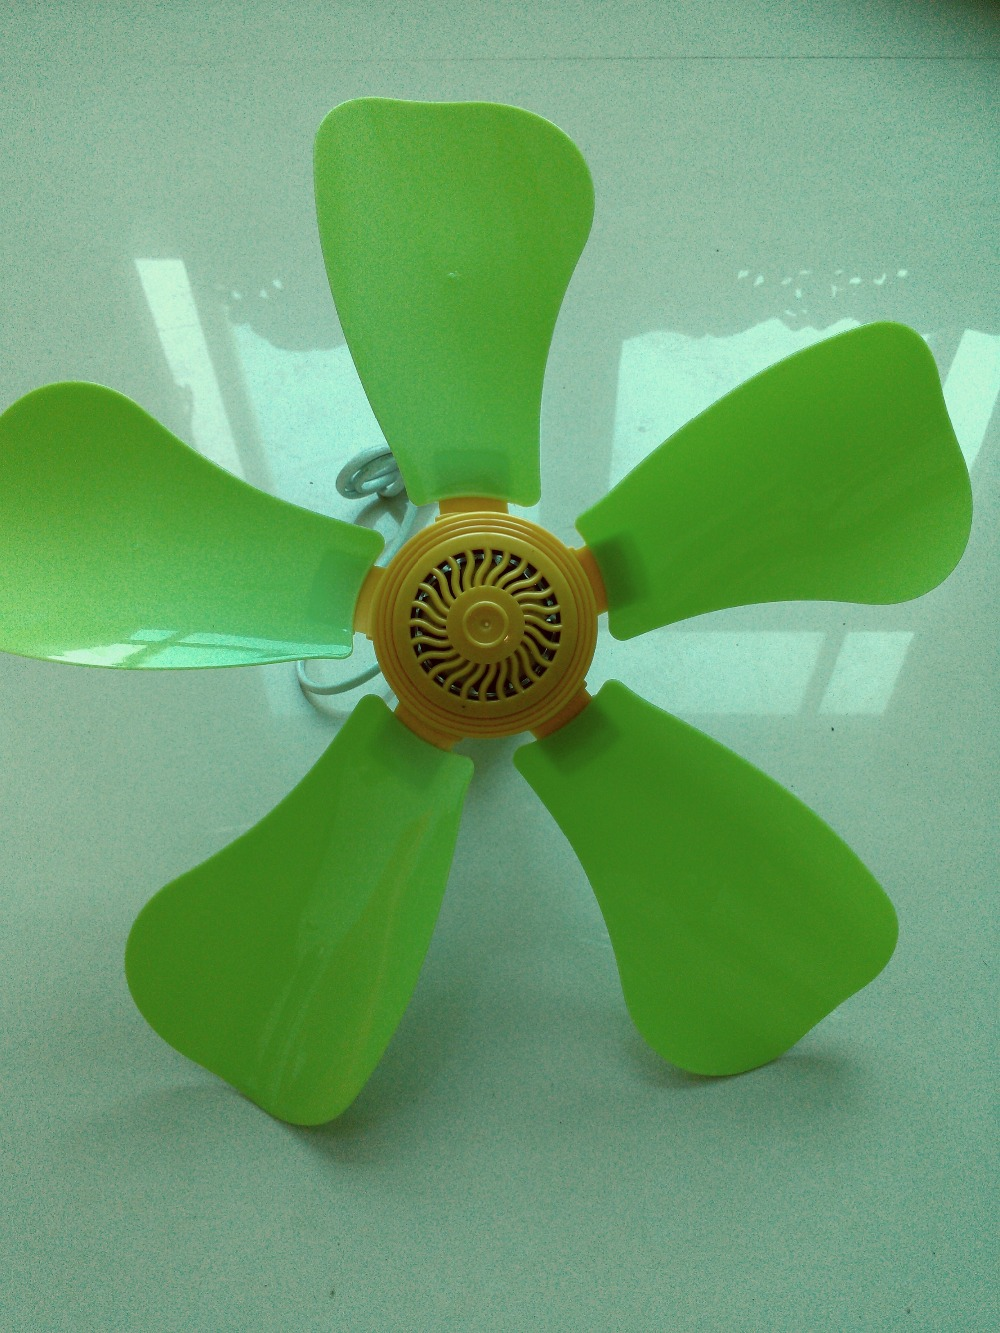 Factory direct sales baihua ceiling fan green electric mini fan new factory direct sales baihua ceiling fan green electric mini fan new products in 2014 fco5 420 in fans from home appliances on aliexpress alibaba group mozeypictures Gallery